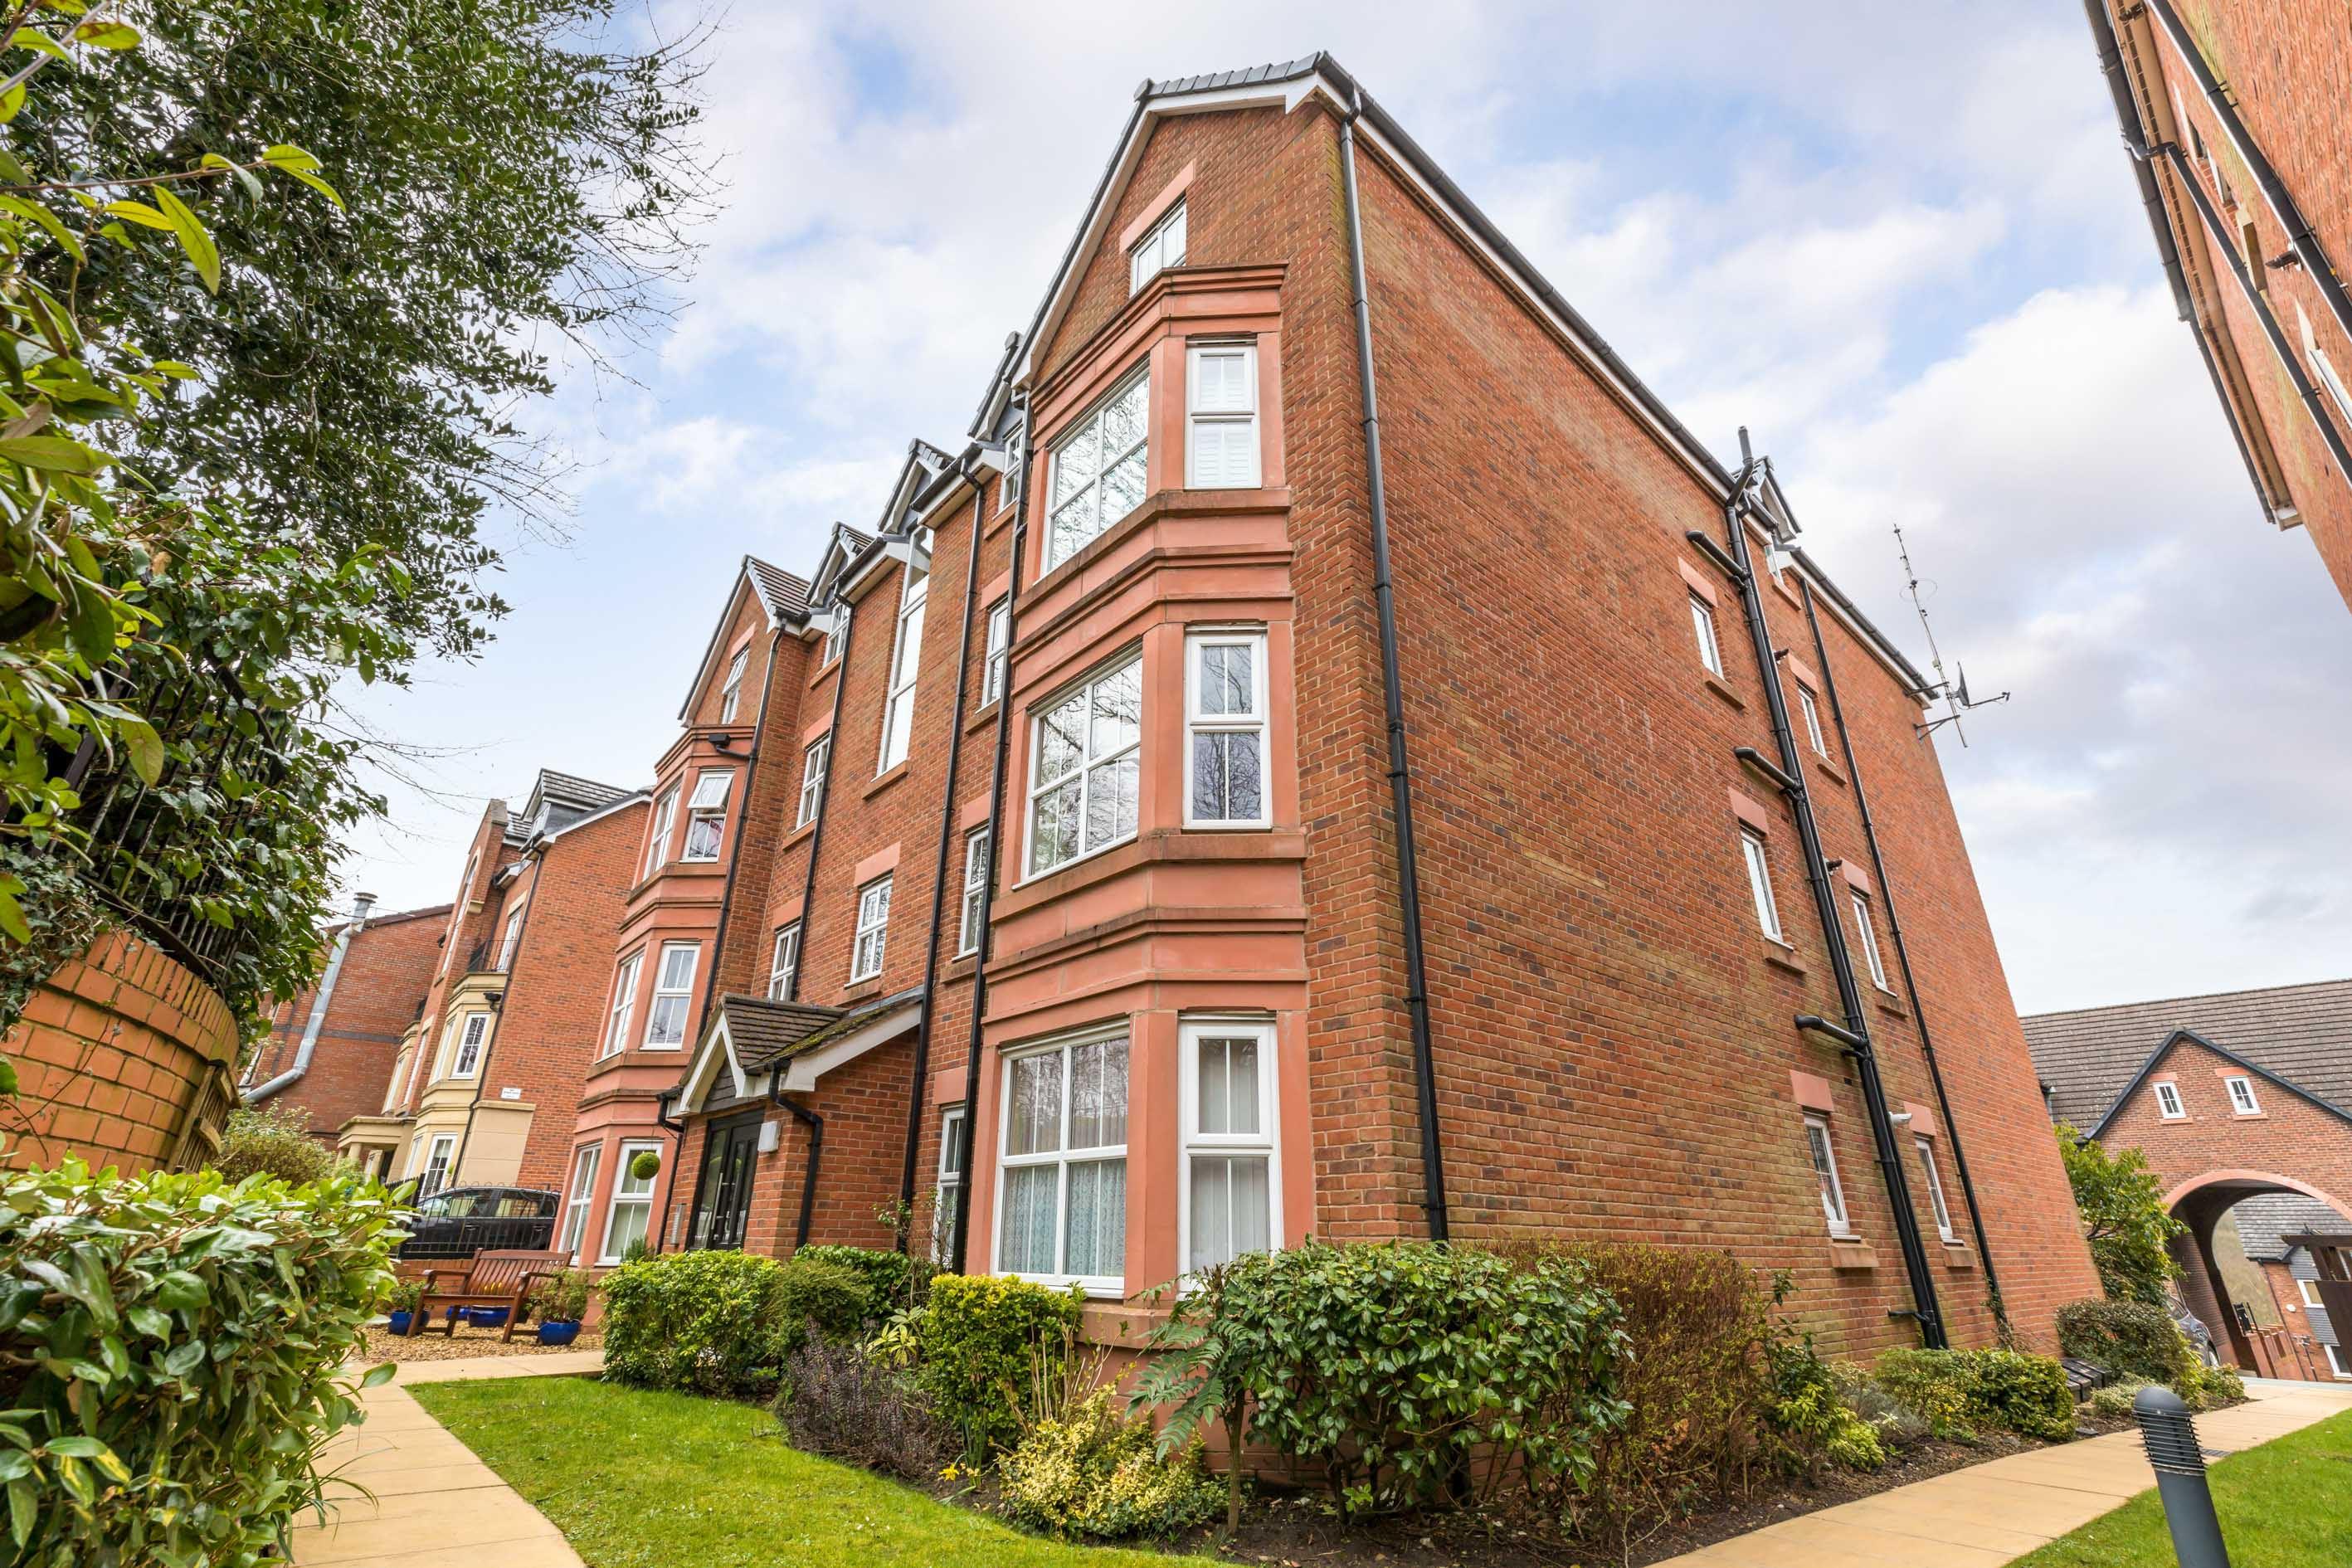 Apartment 4, Wigan Road, Standish, WN1 2RF - EAID:Regan Hallworth, BID:Regan & Hallworth- Wigan